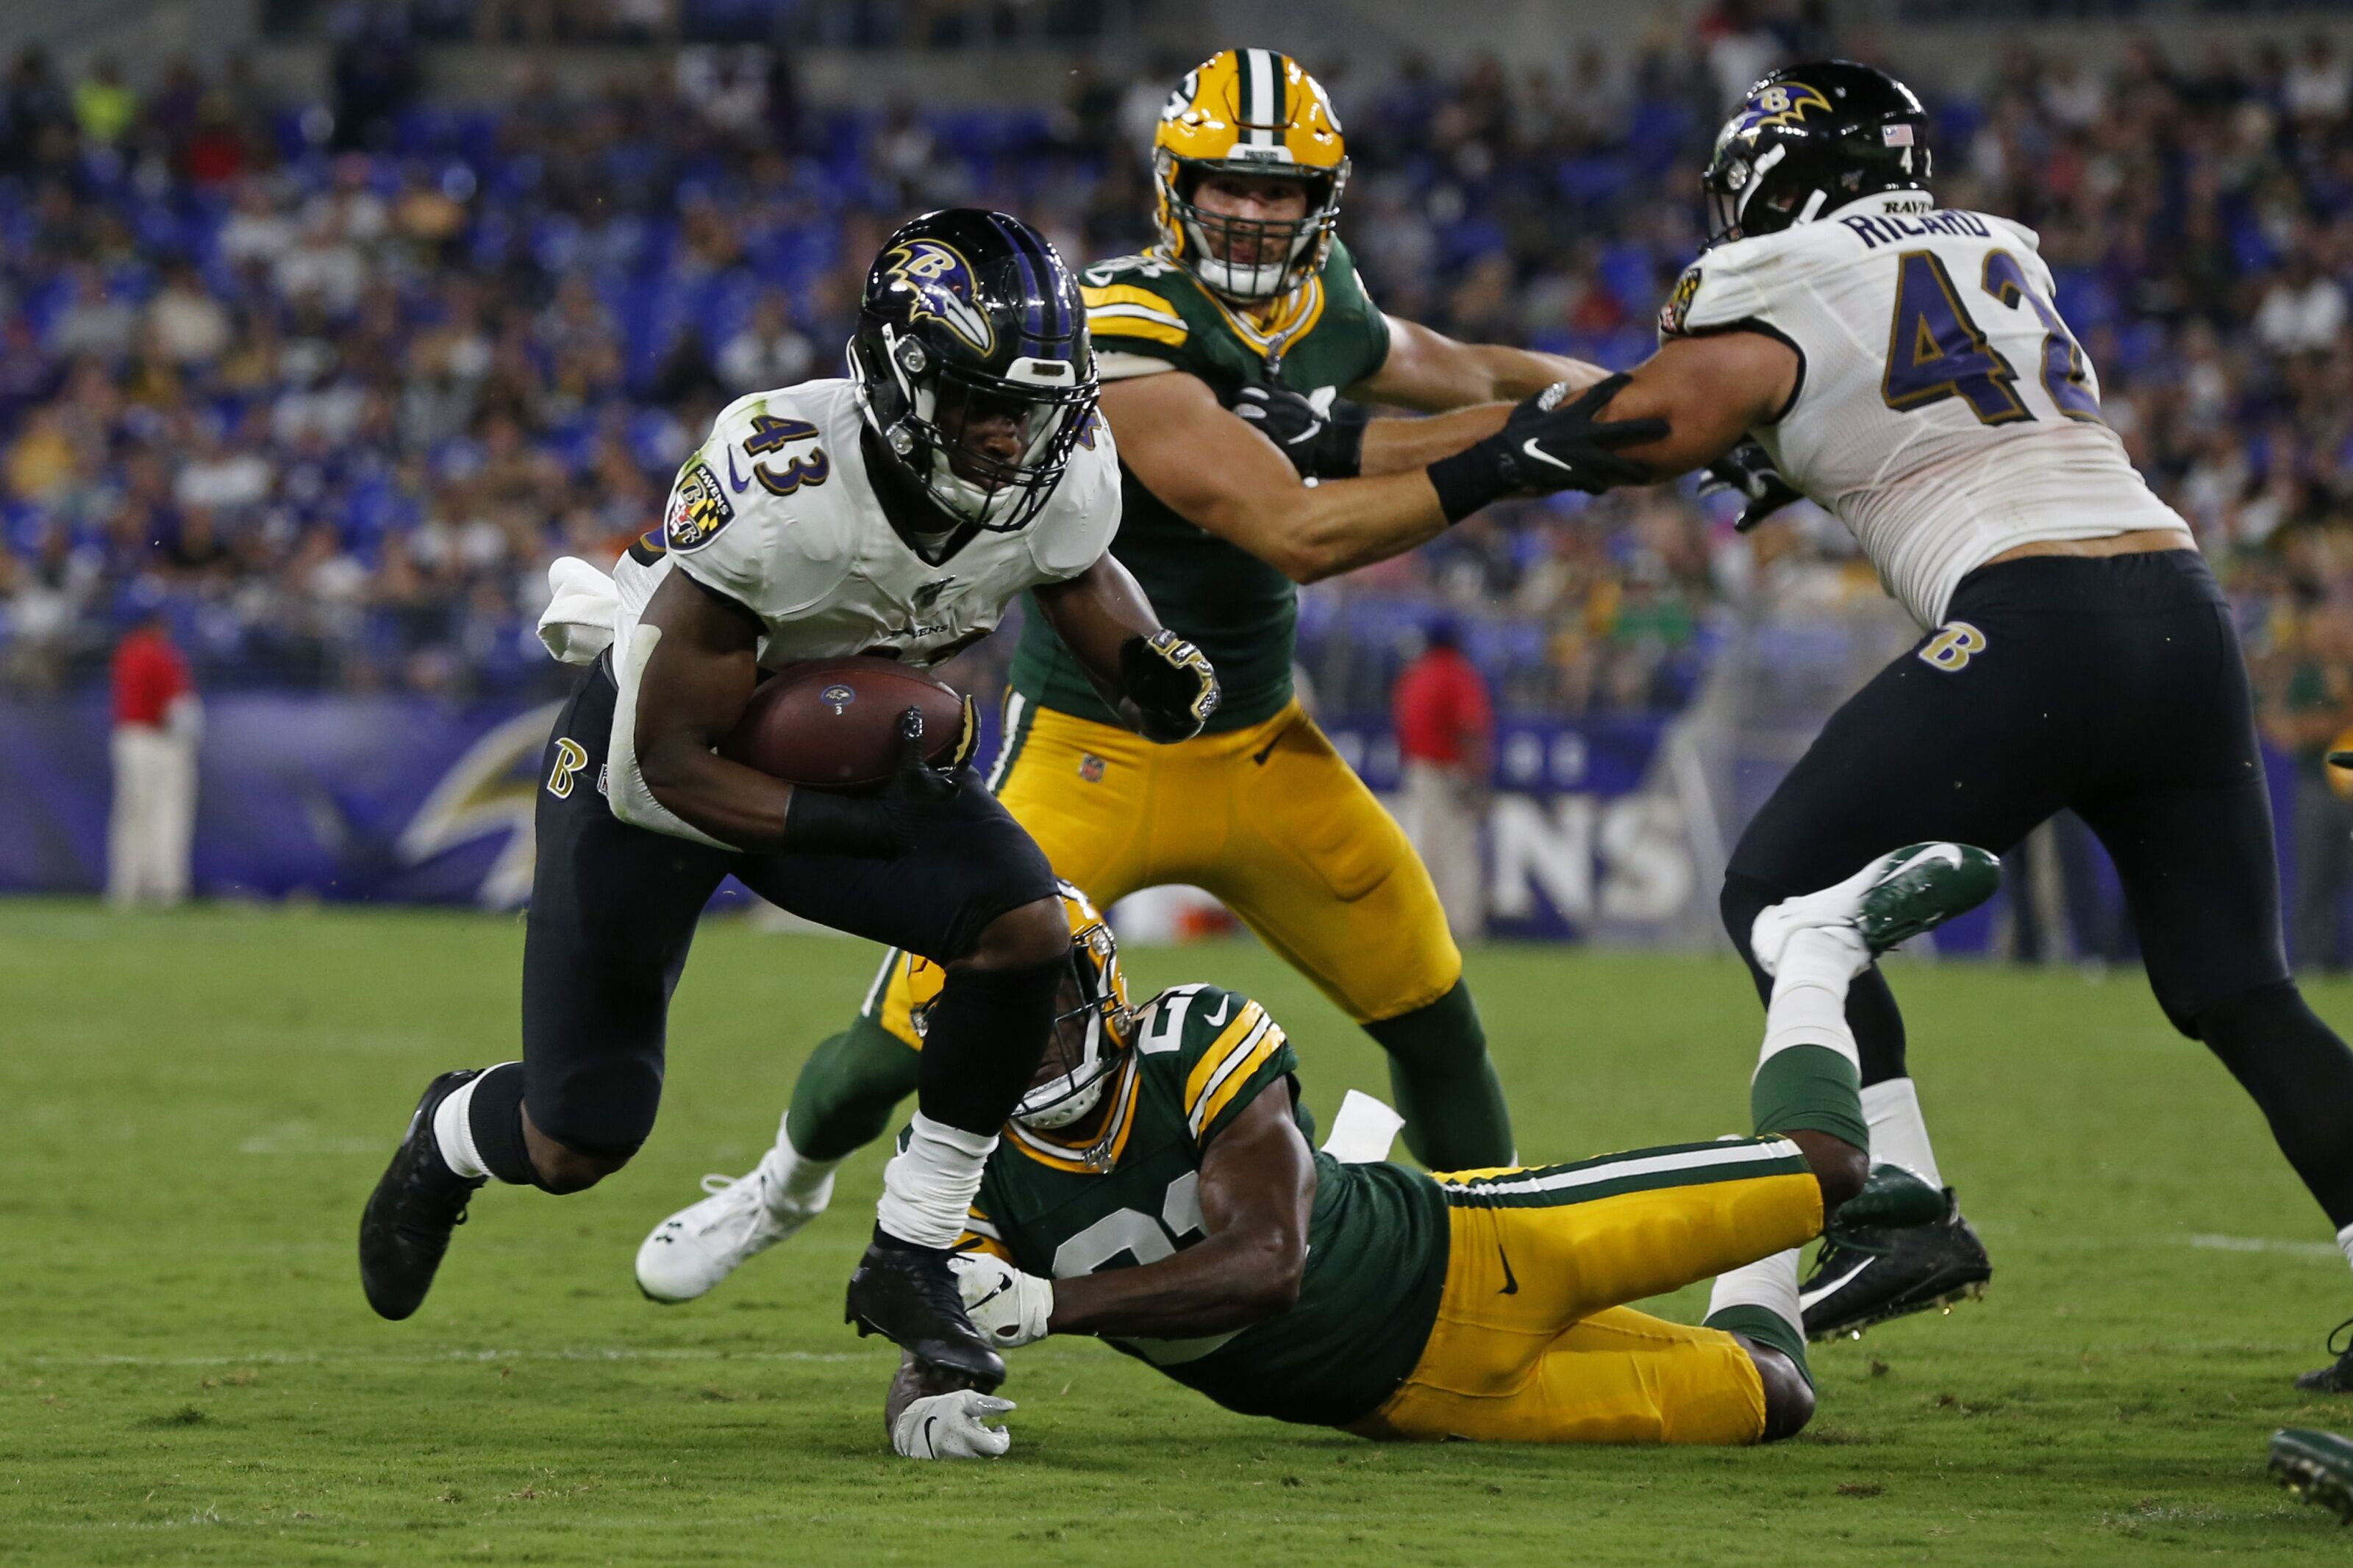 Baltimore Ravens: Justice Hill making a strong case for a large role